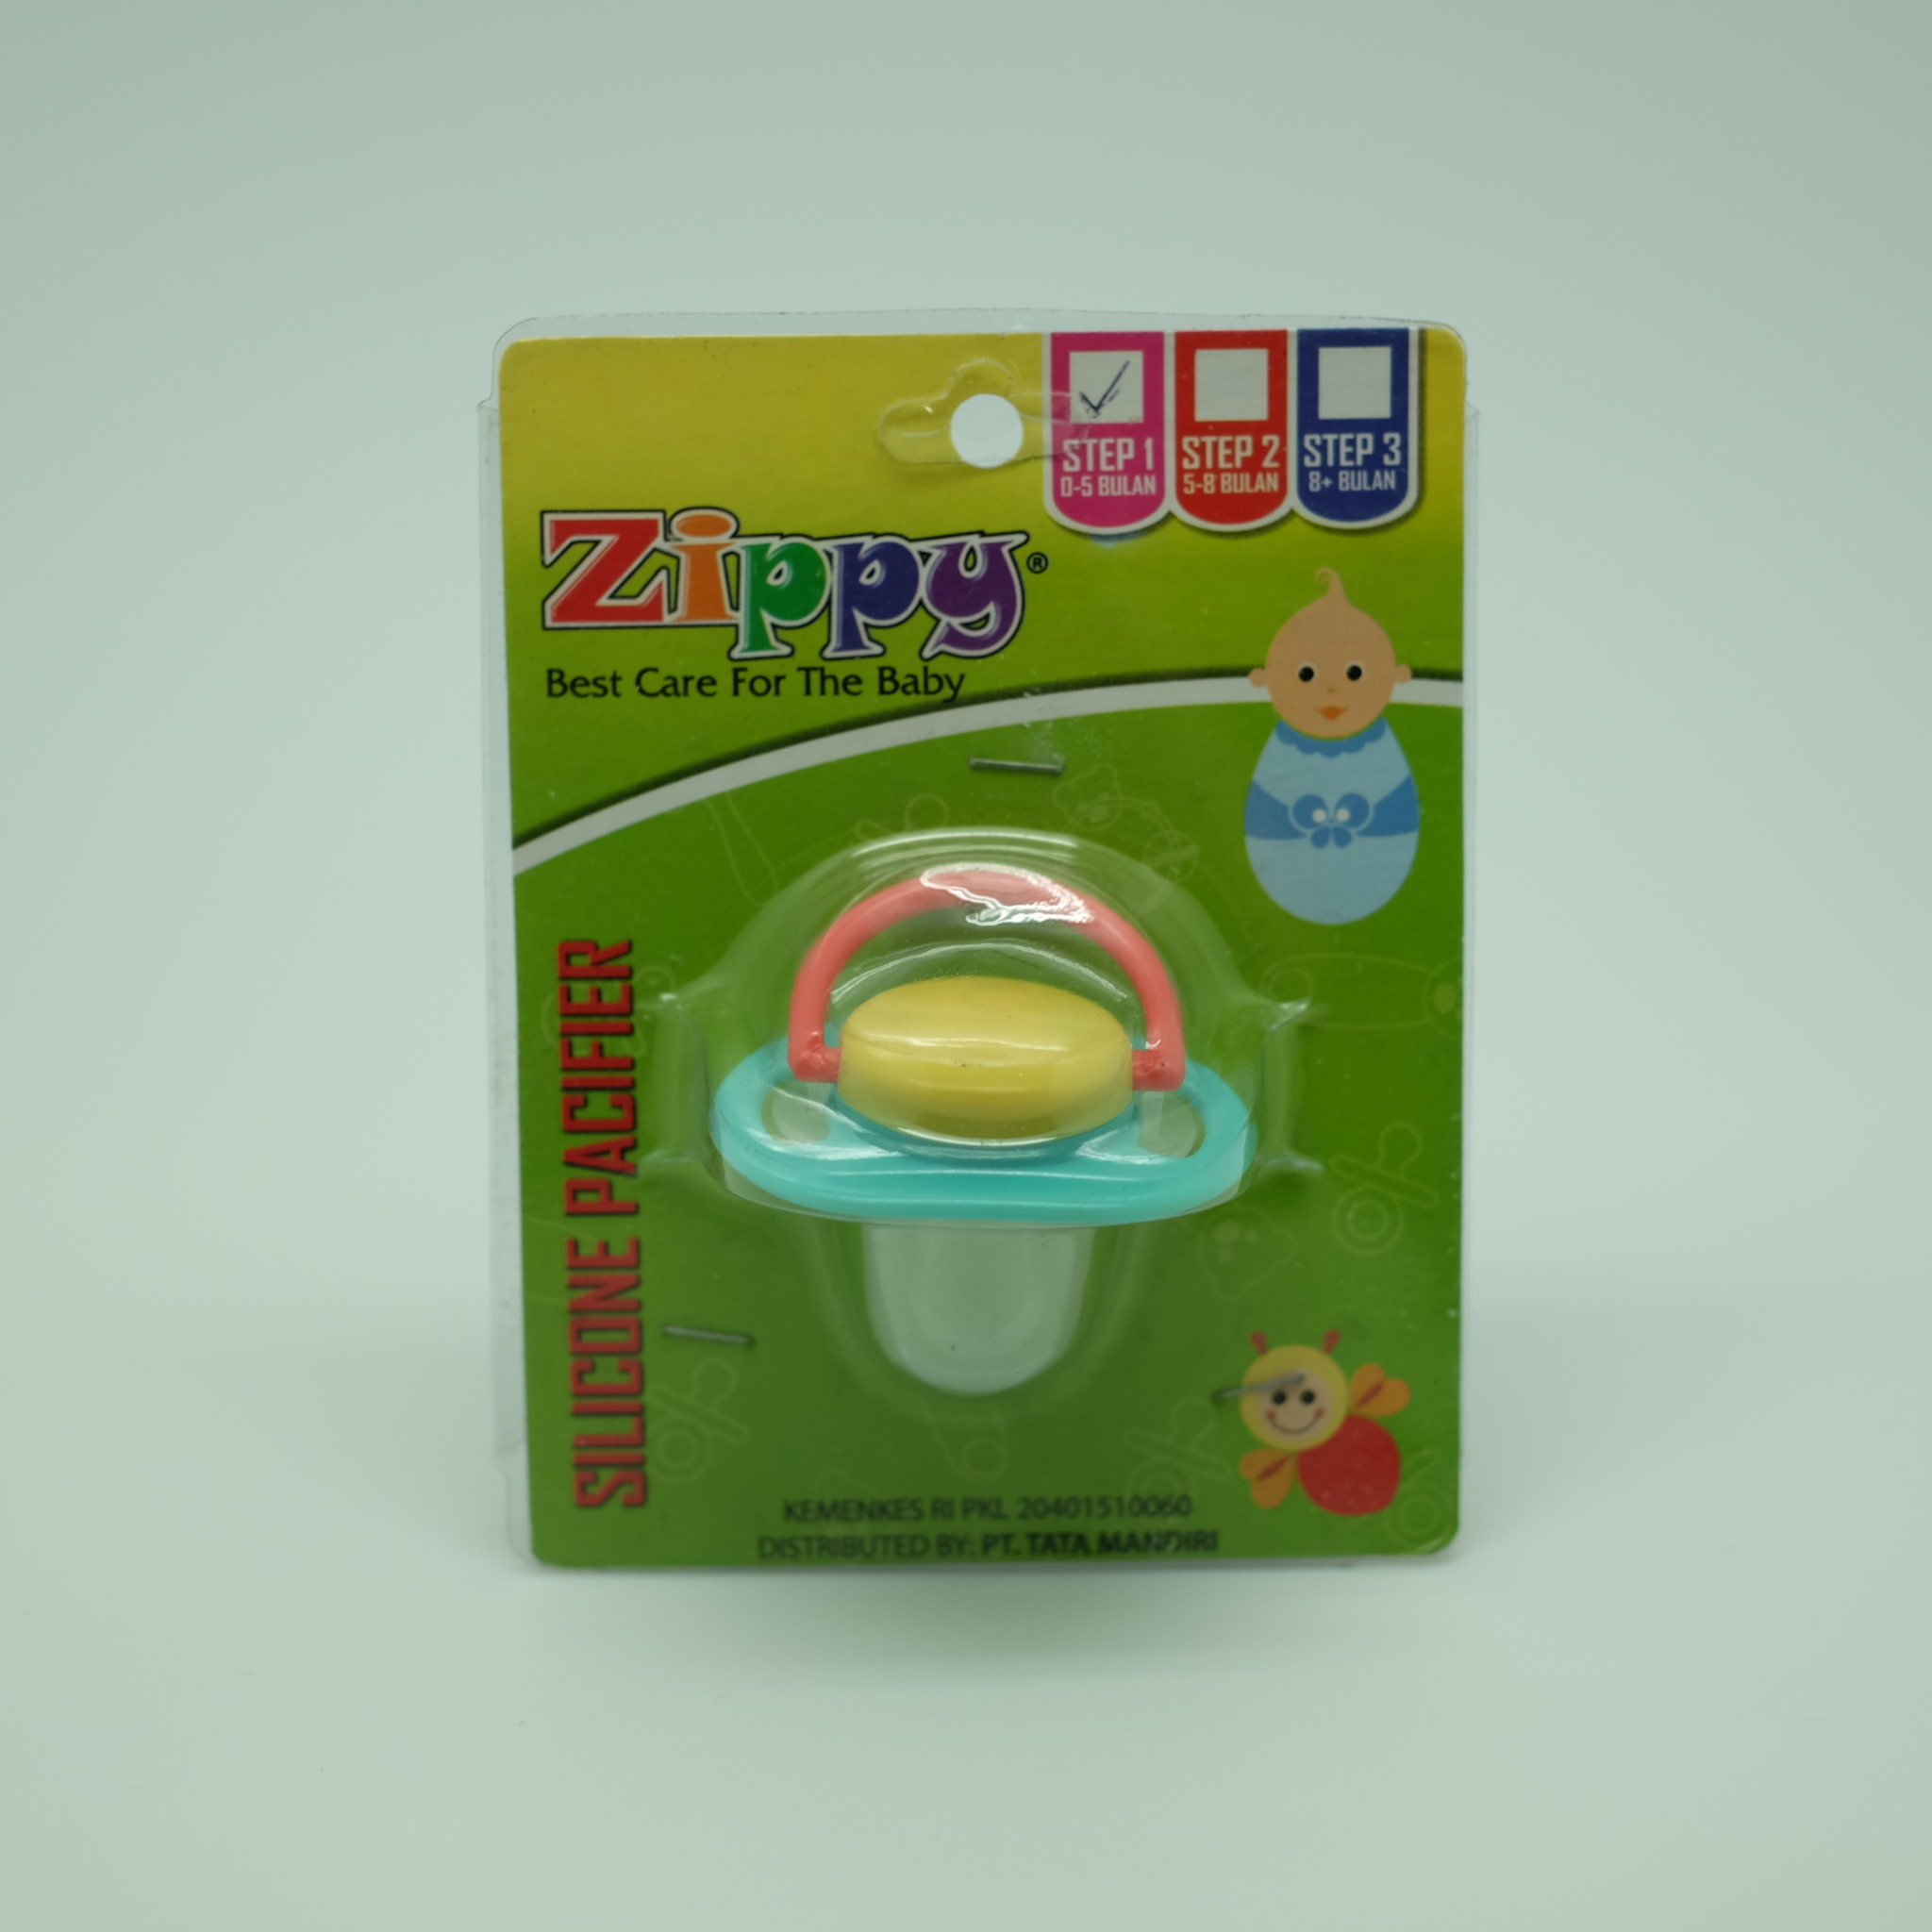 Pigeon Silicone Pacifier Step 1 Puppy Green Empeng Bayi Daftar Lustybunny Little Deer Dp 2002 Source 2 Pc Buah